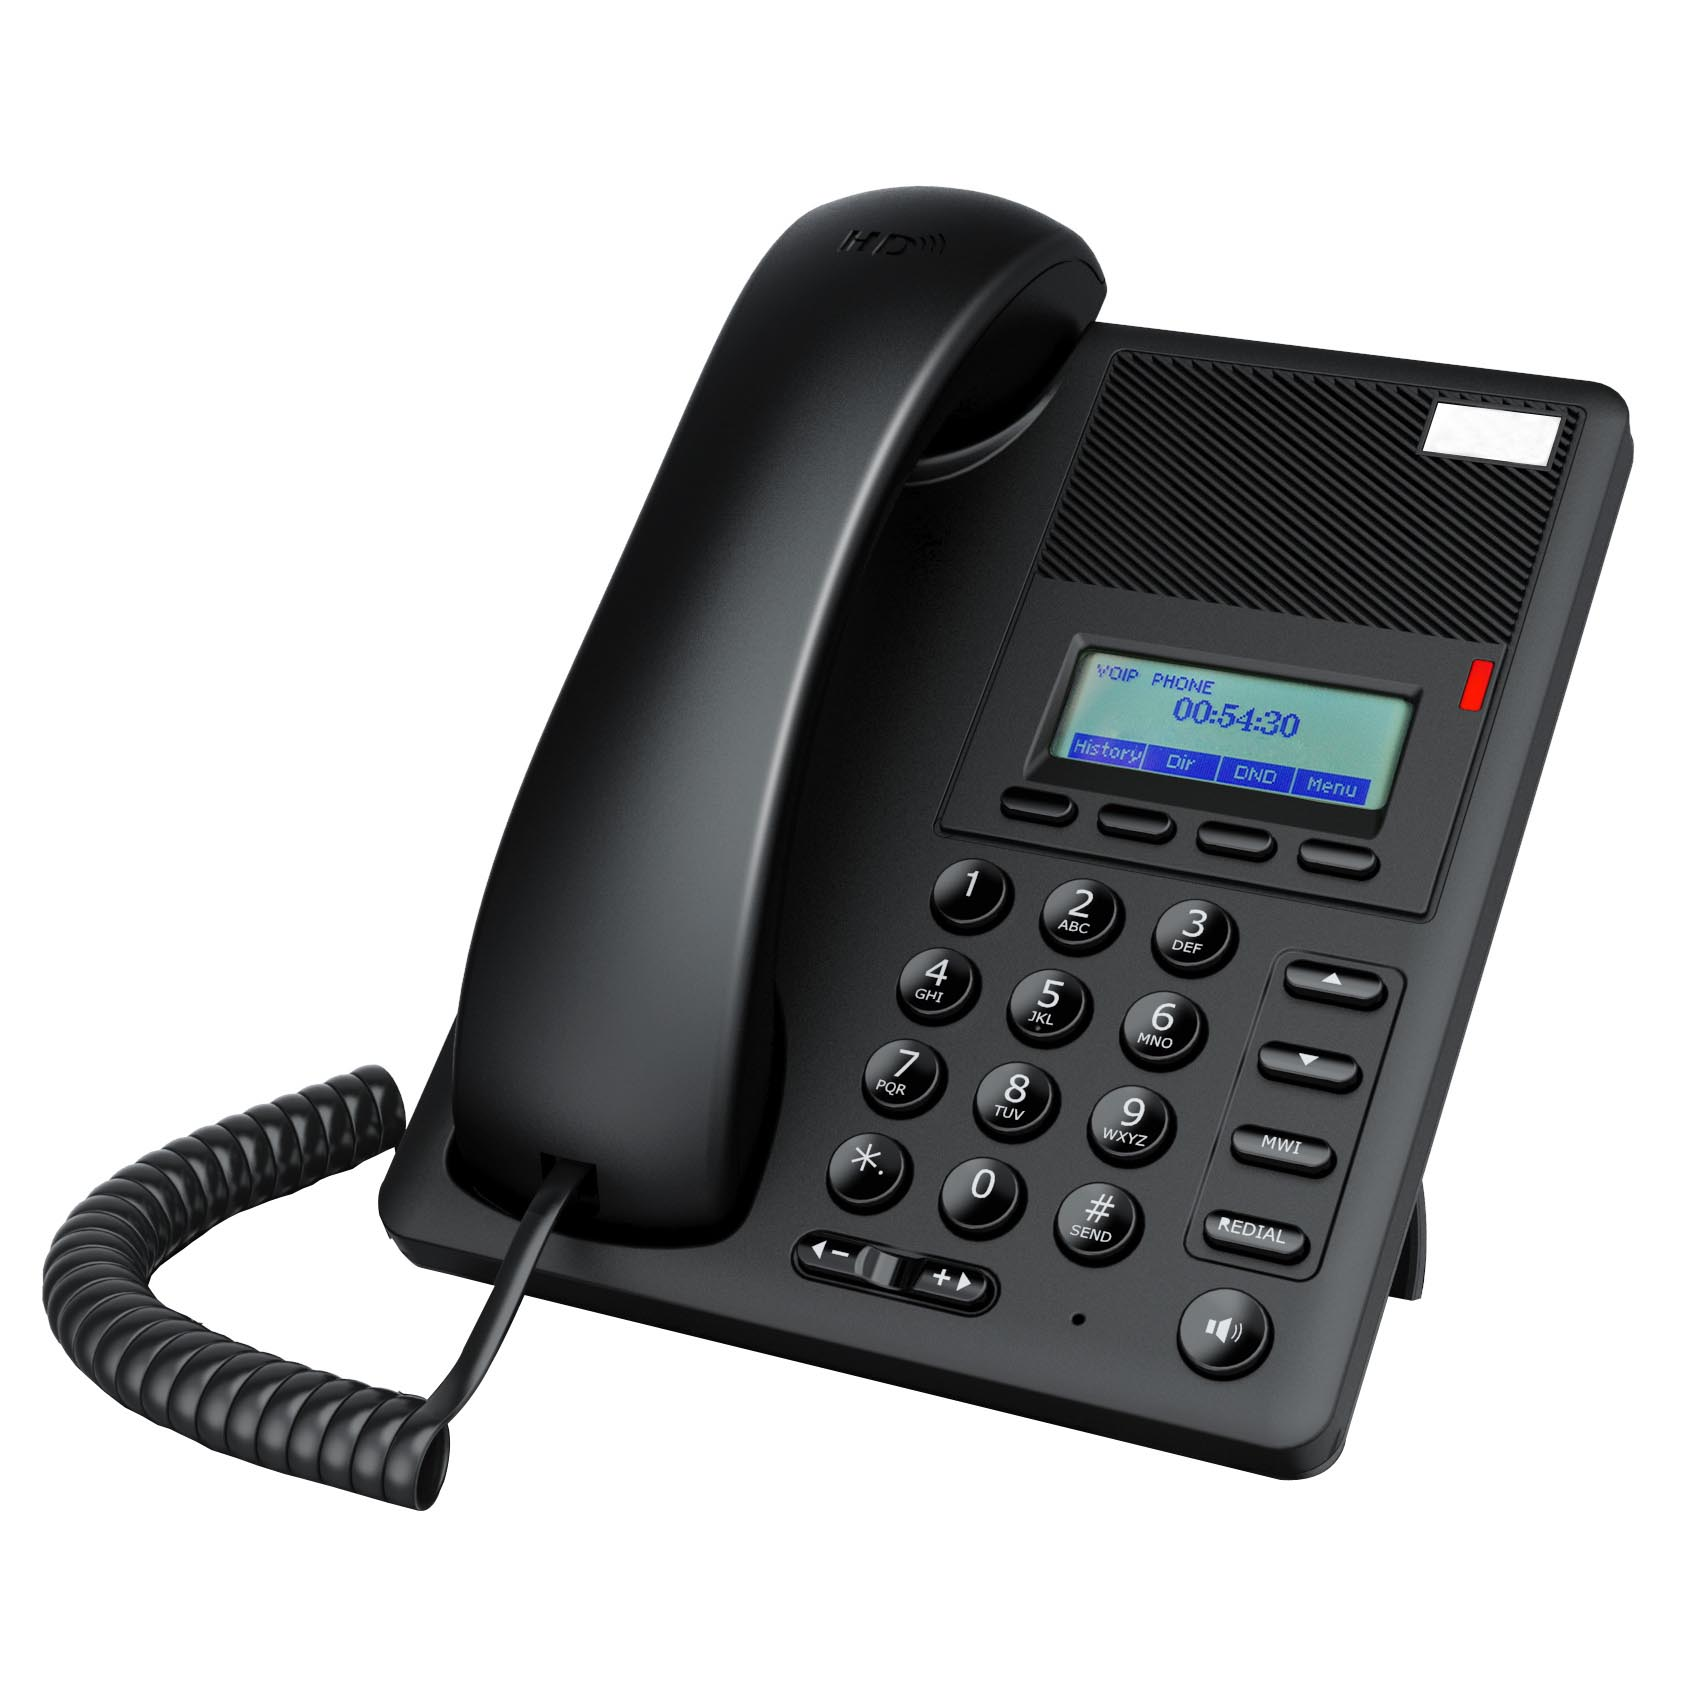 Avaya/Asterisk divalidasi VoIP Telepon POE A21 2 Garis Entry-level bisnis SIP IP Phone Dual core CPU, suara HD, Backlight